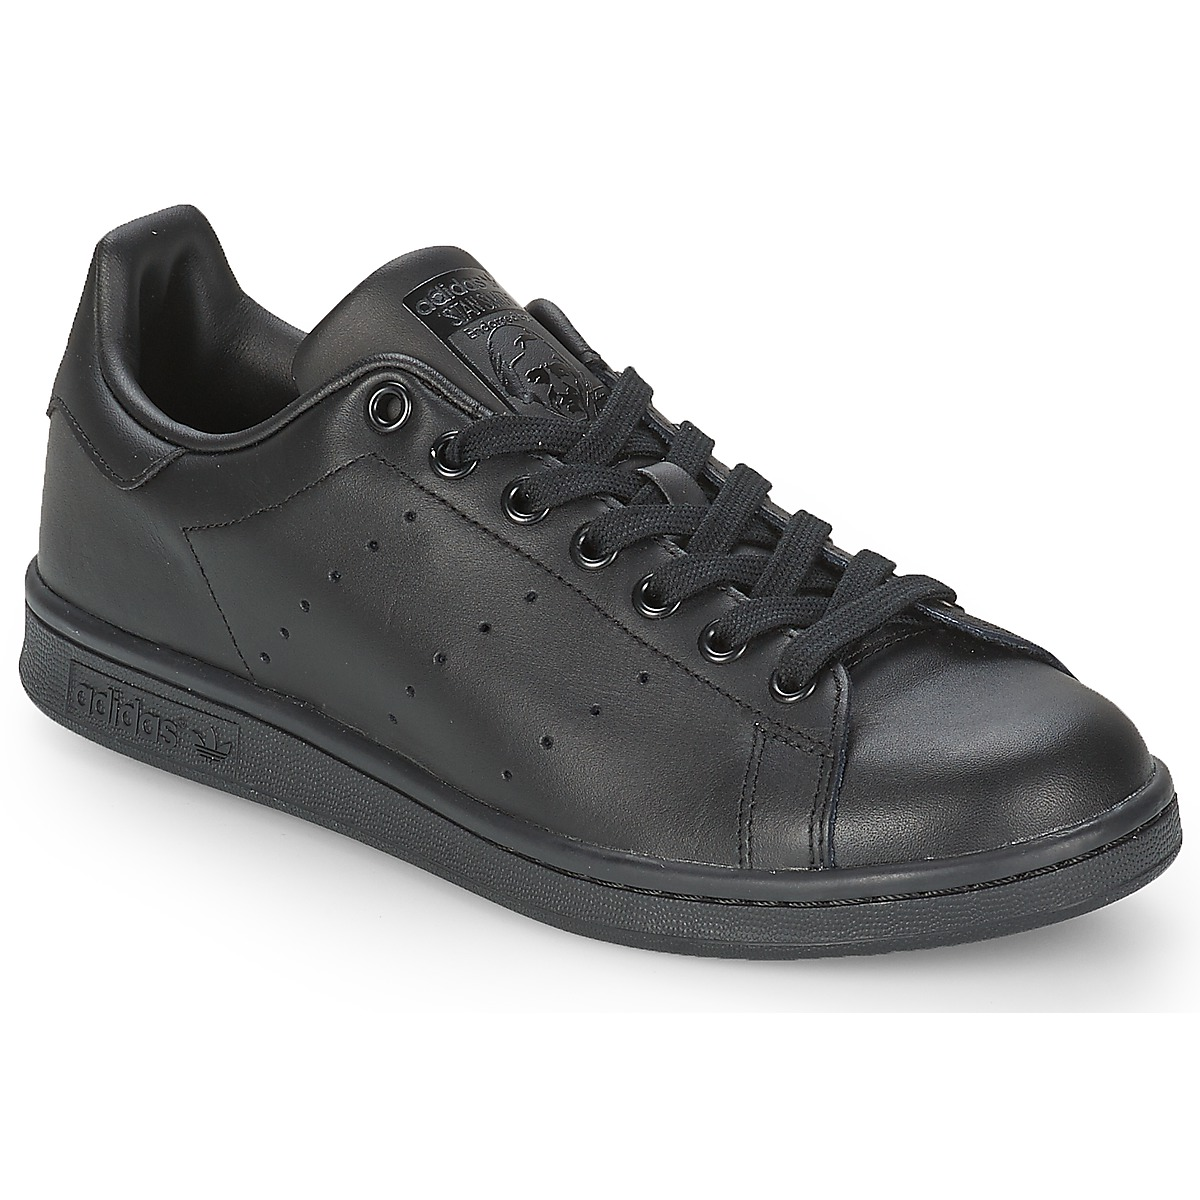 d8f74f20758 Xαμηλά Sneakers adidas STAN SMITH, Ανδρικά sneakers, ΑΝΔΡΑΣ ...